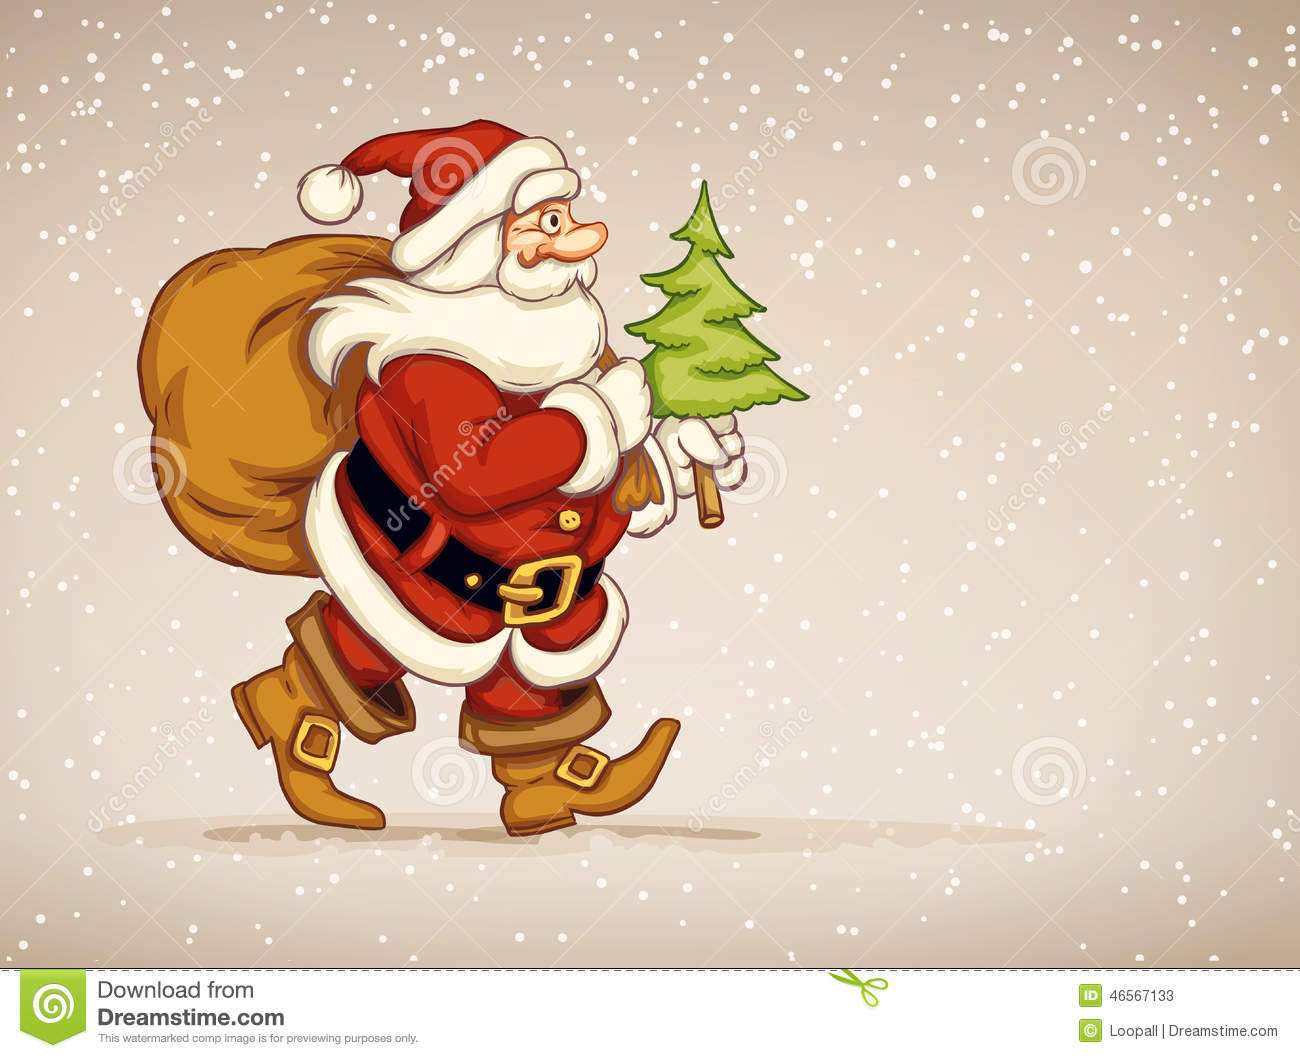 Santa Claus Walking With Sack Of Gifts And Firtree In His